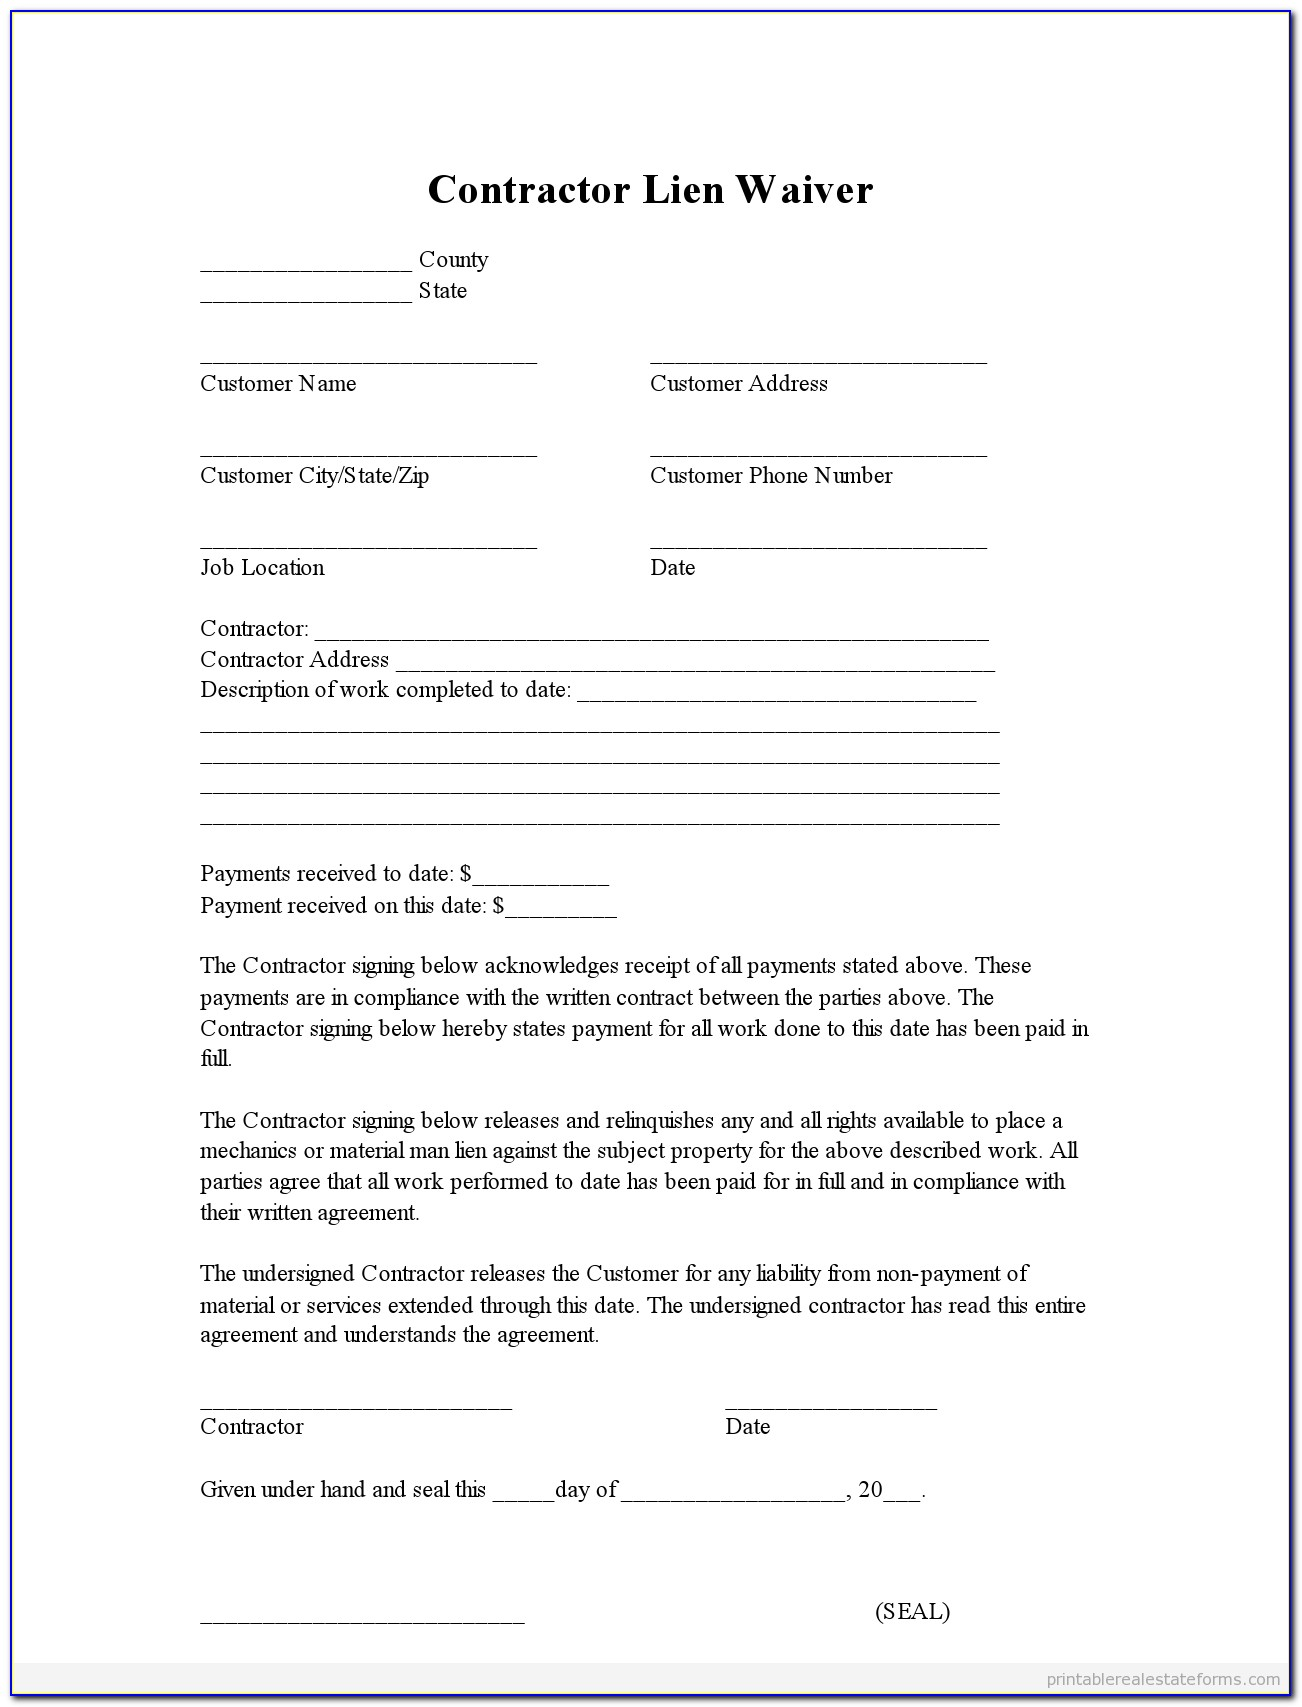 Example Of Lien Waiver Form